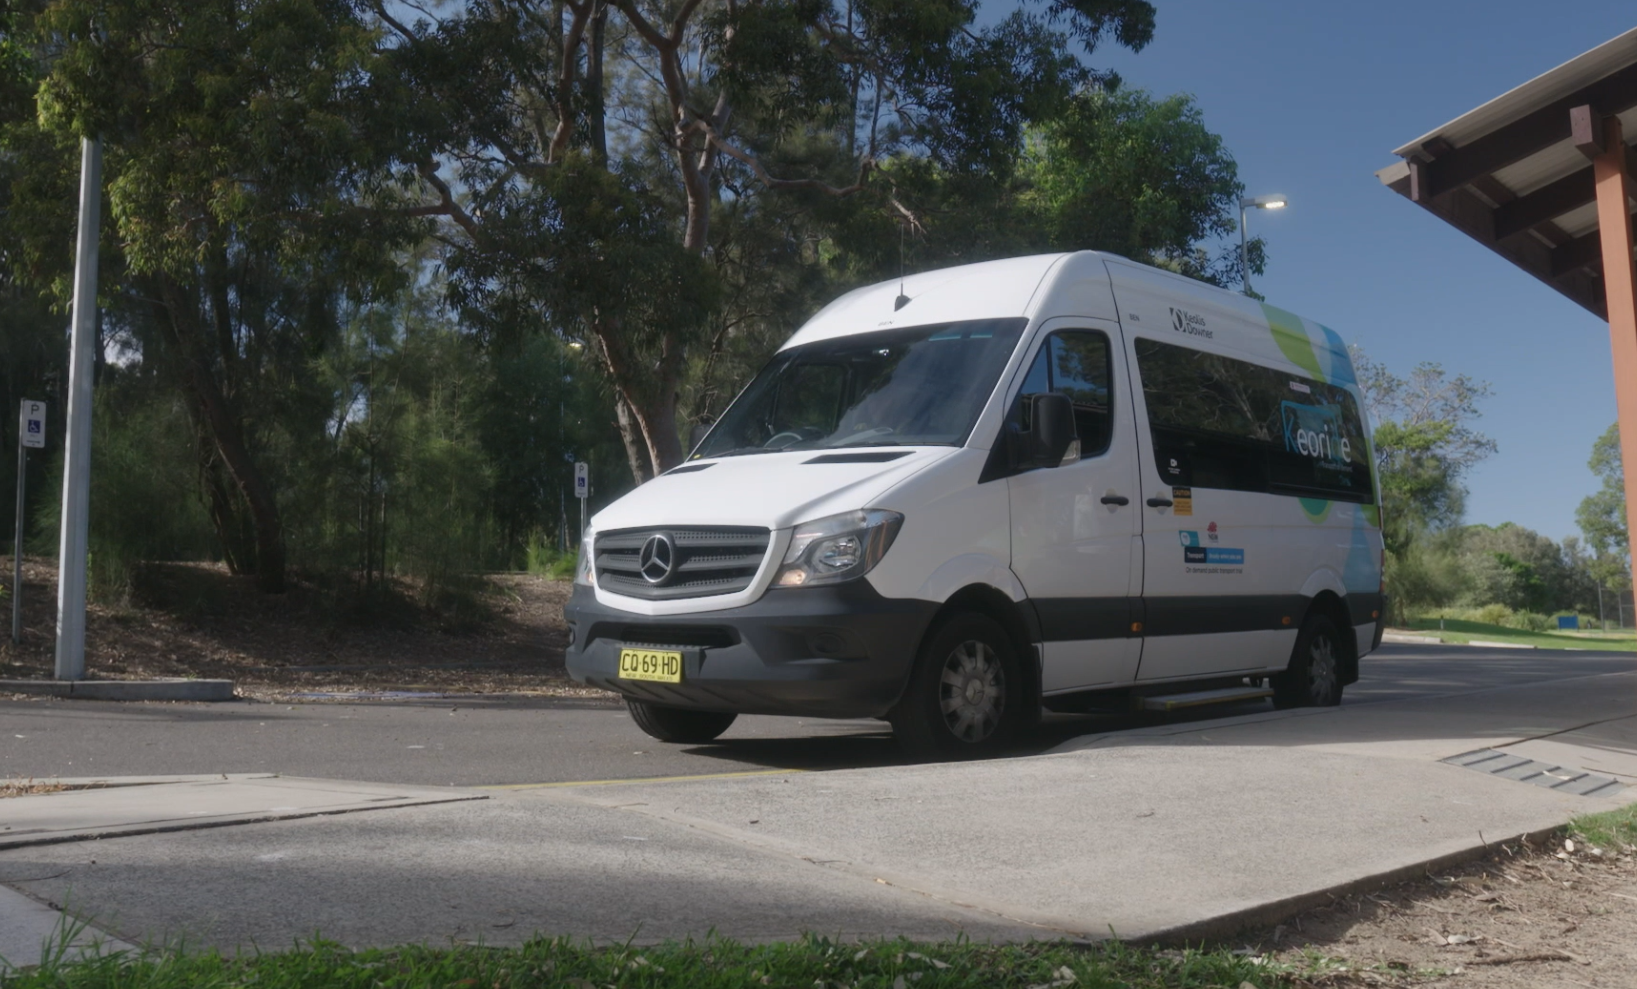 The Northern Beaches community embraces On Demand transport service Keoride